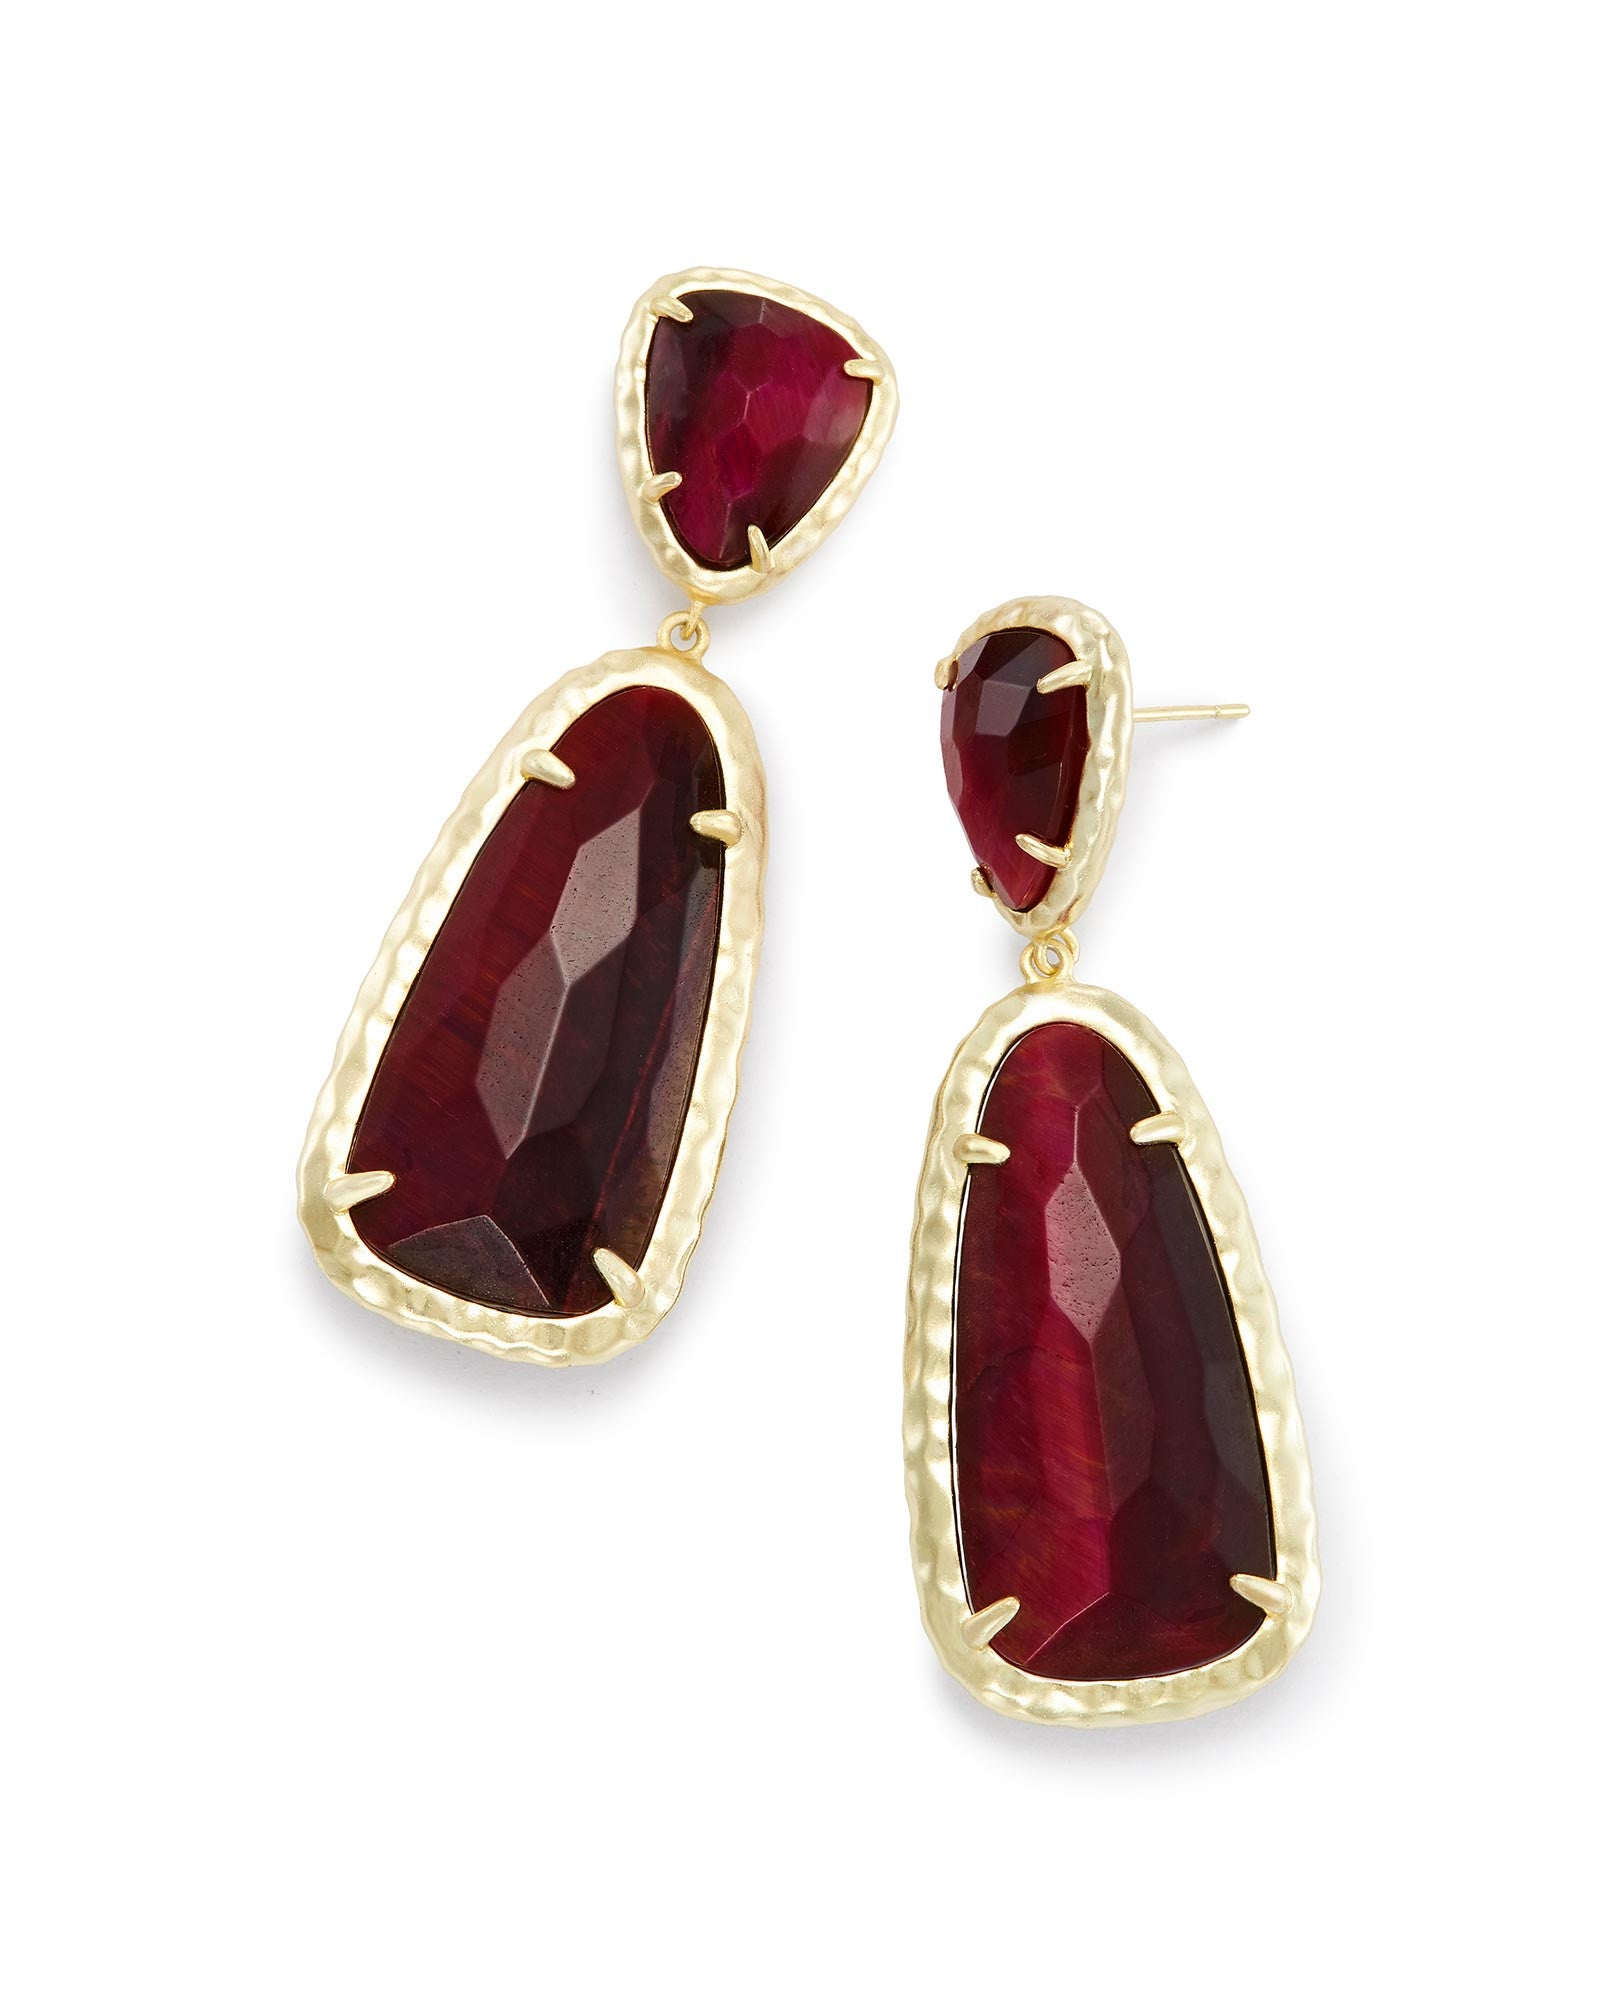 Made with Swarovski Crystal 18K Gold Filled Ruby Stone Drop Earrings - CharmToSpare